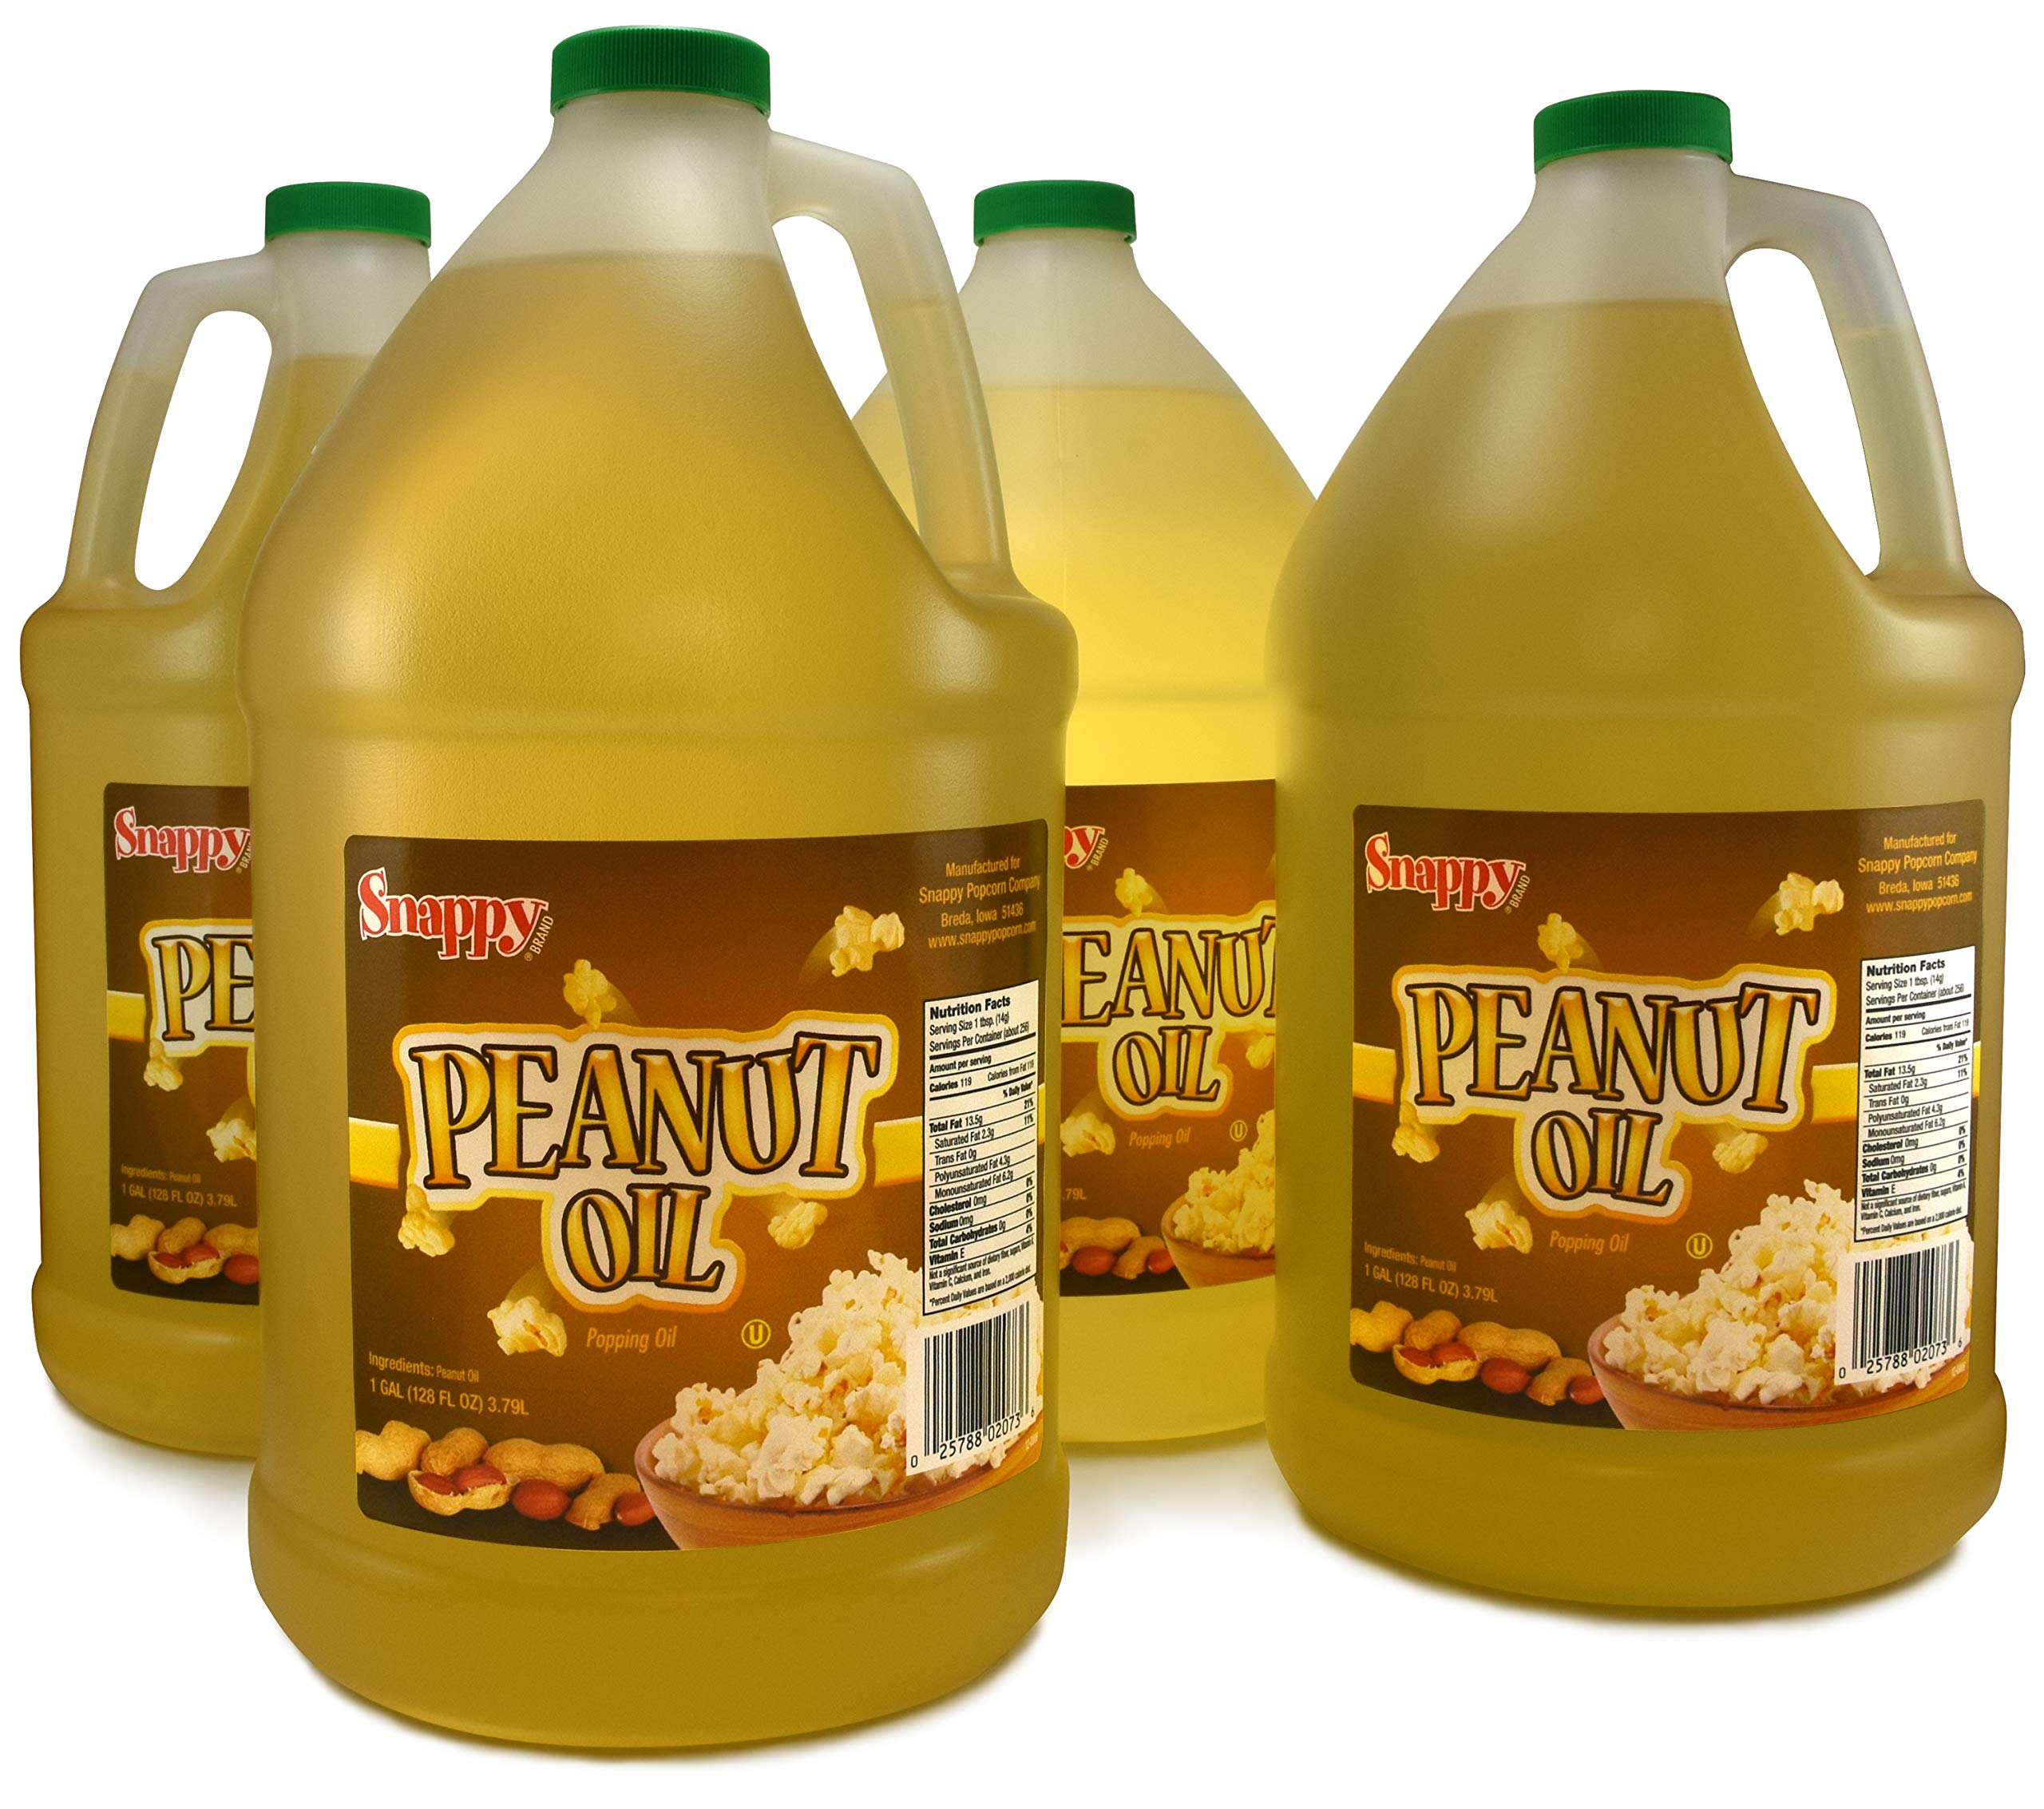 Snappy Pure Peanut Oil - No Color Added (4-1 Gallon) by SNAPPY